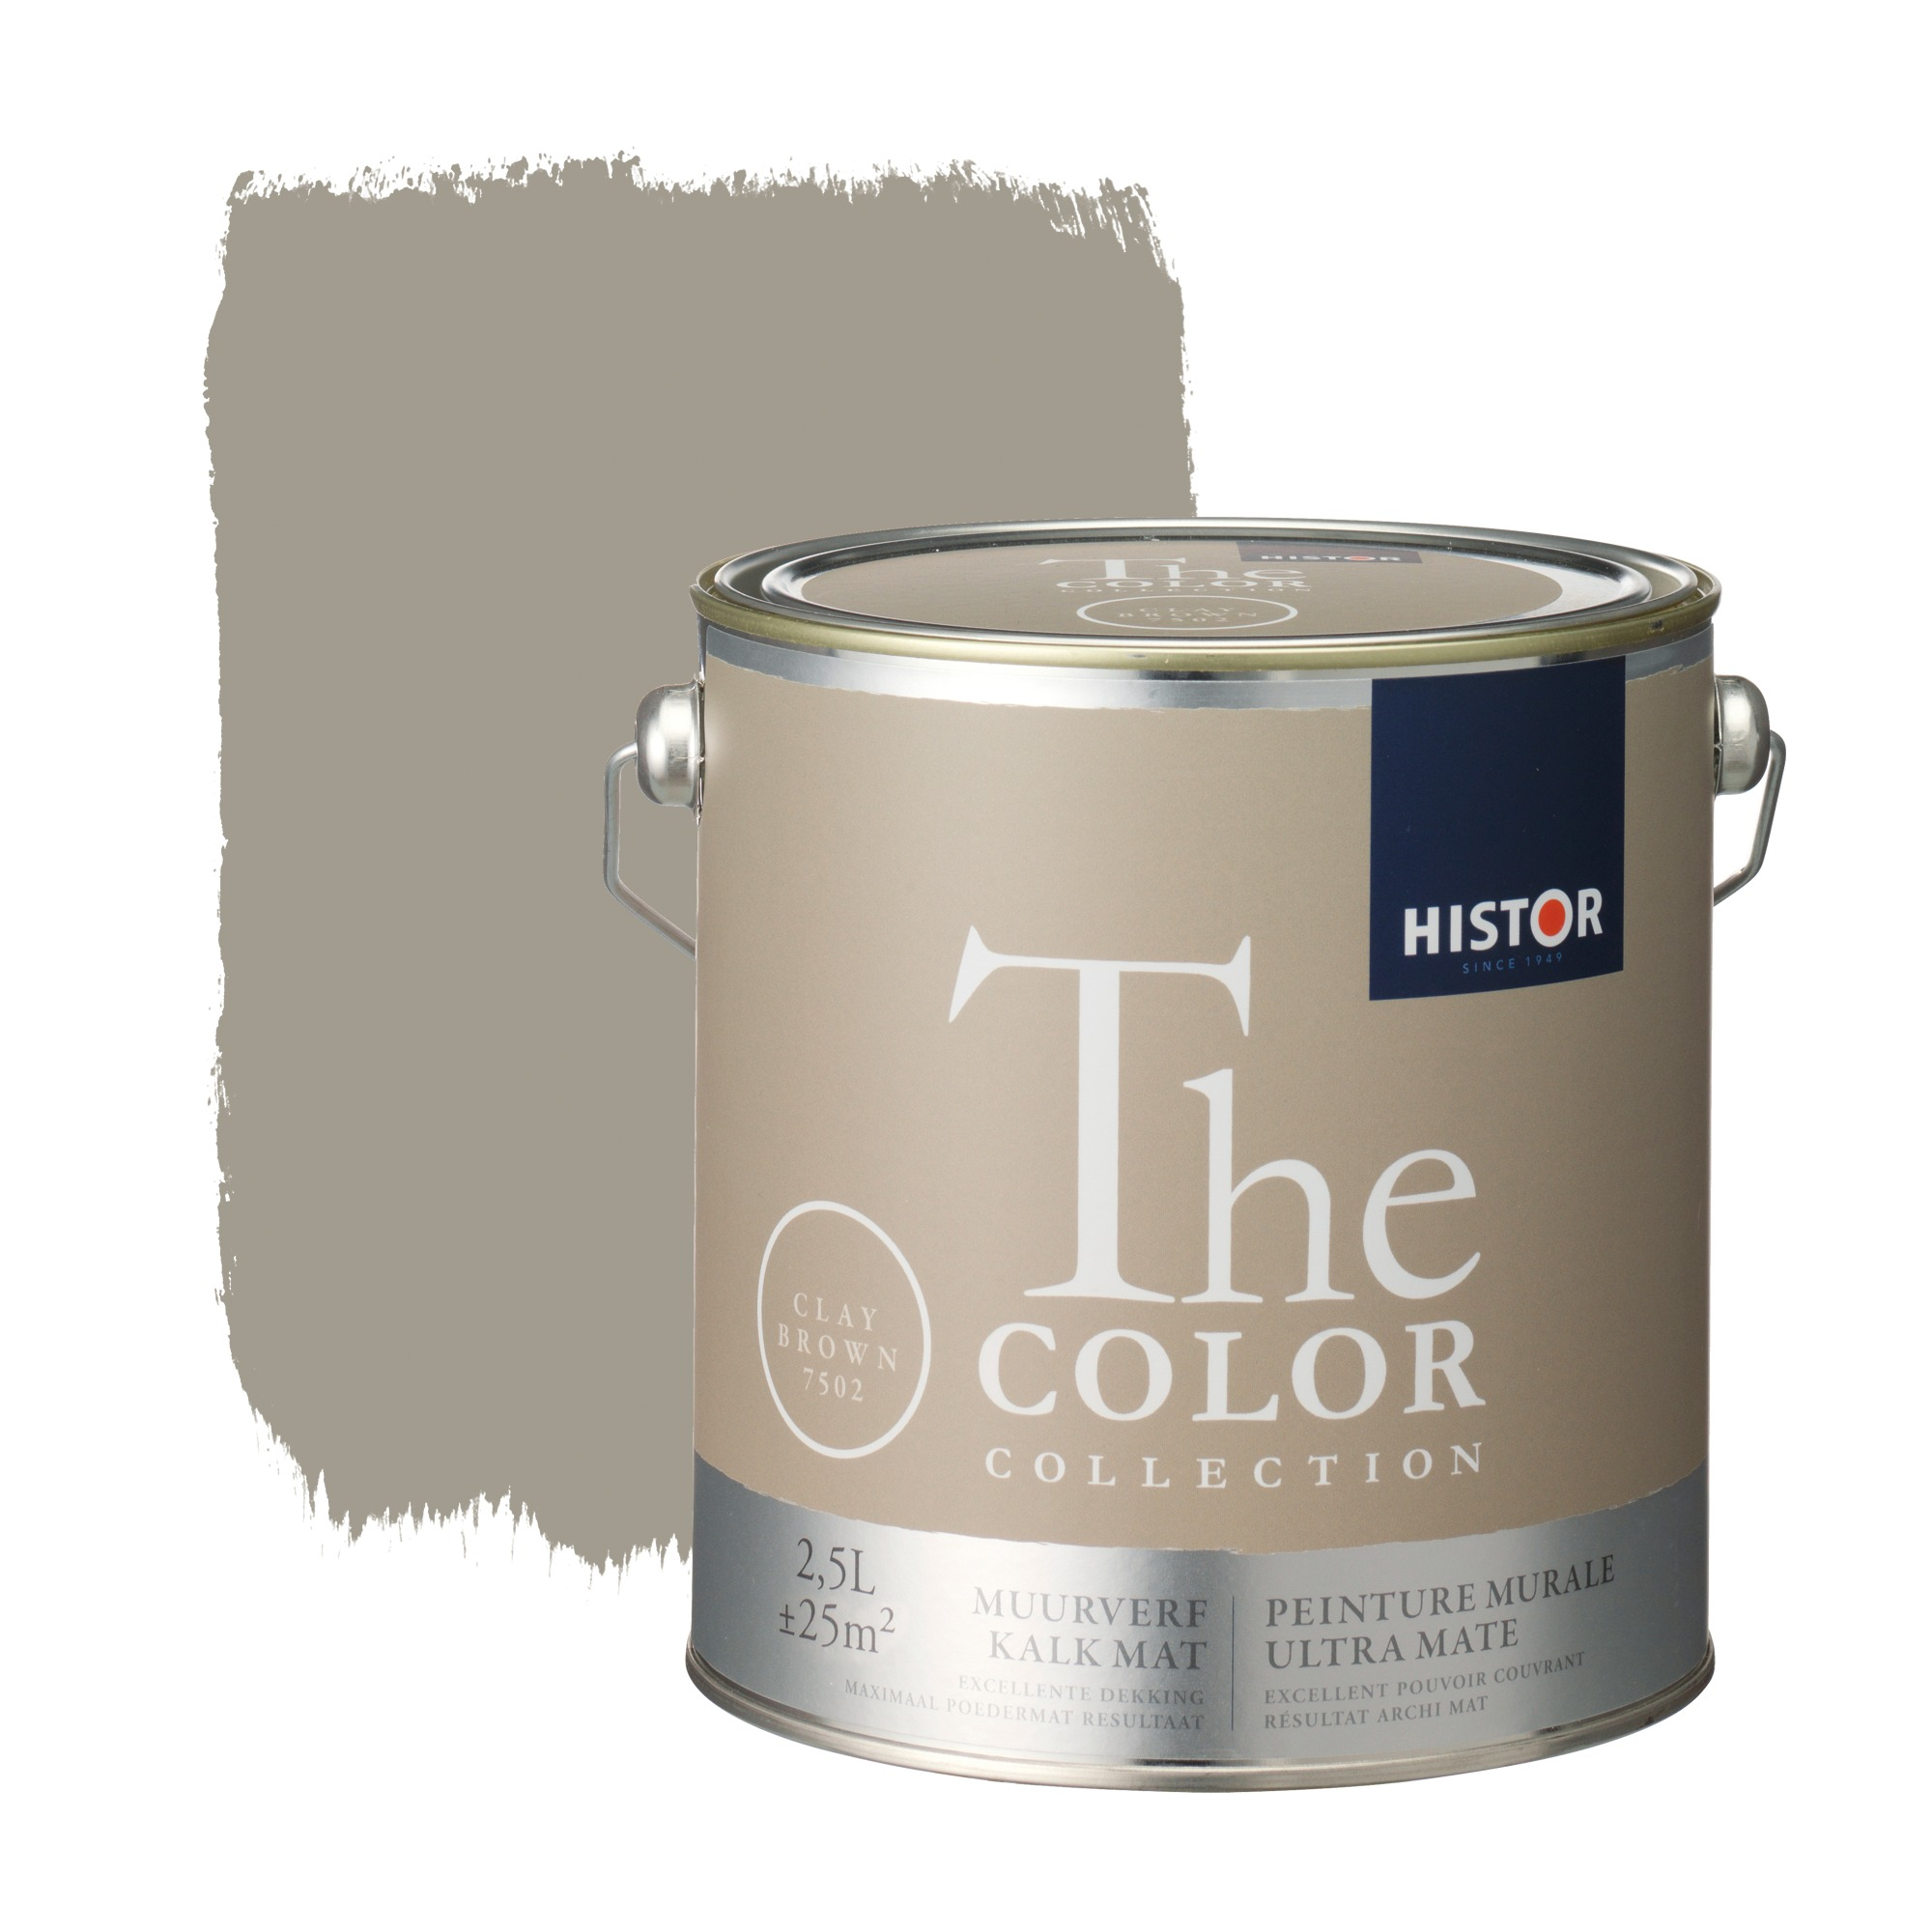 Histor the color collection muurverf kalkmat clay brown 7502 2,5 l